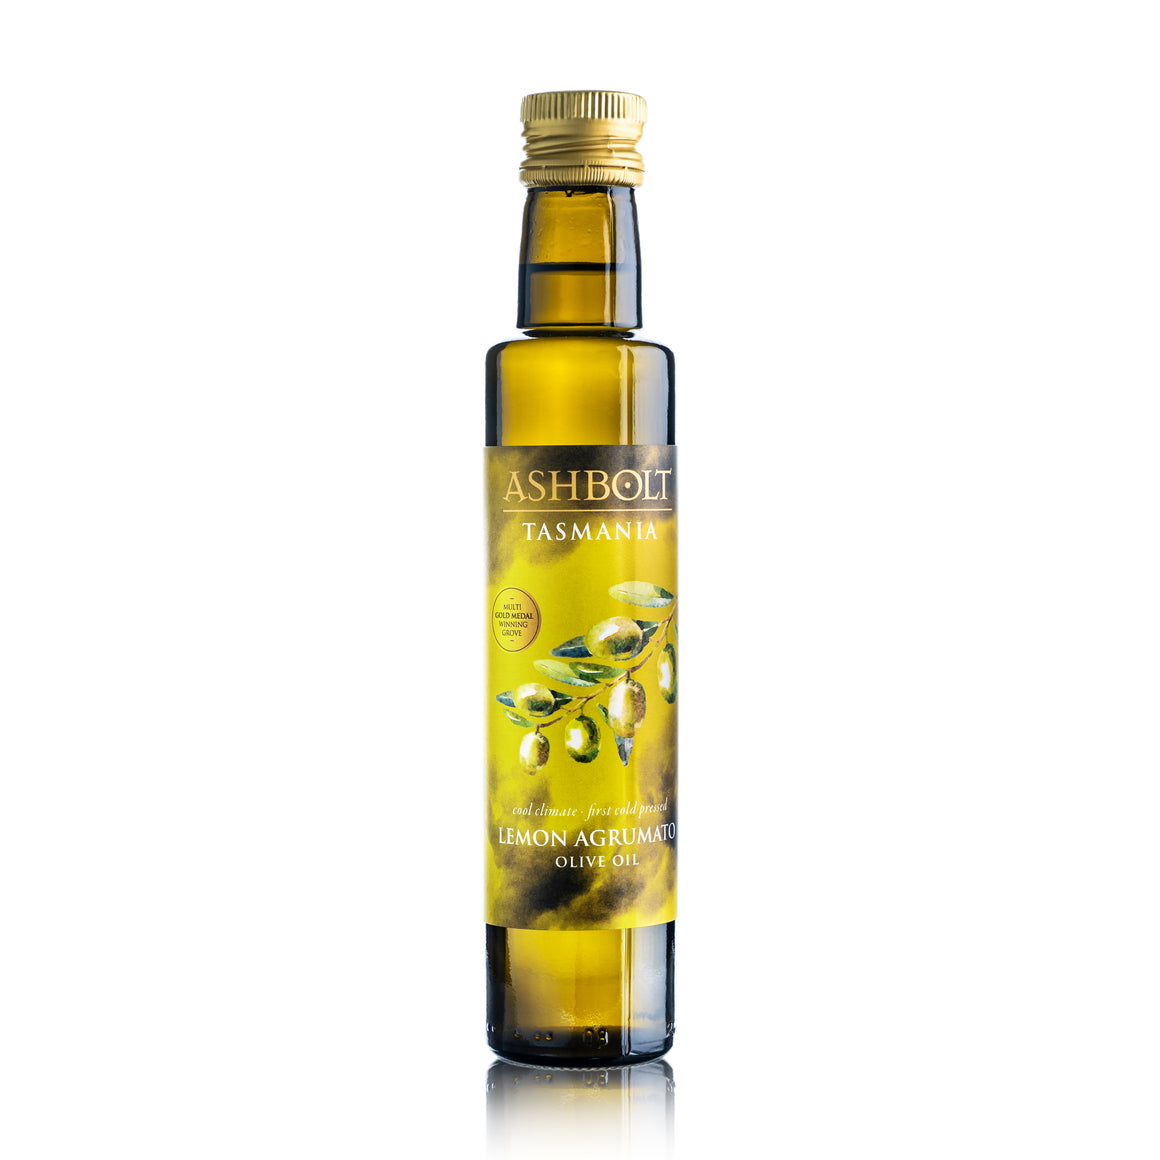 Lemon Agrumato Olive Oil 250ml bottle